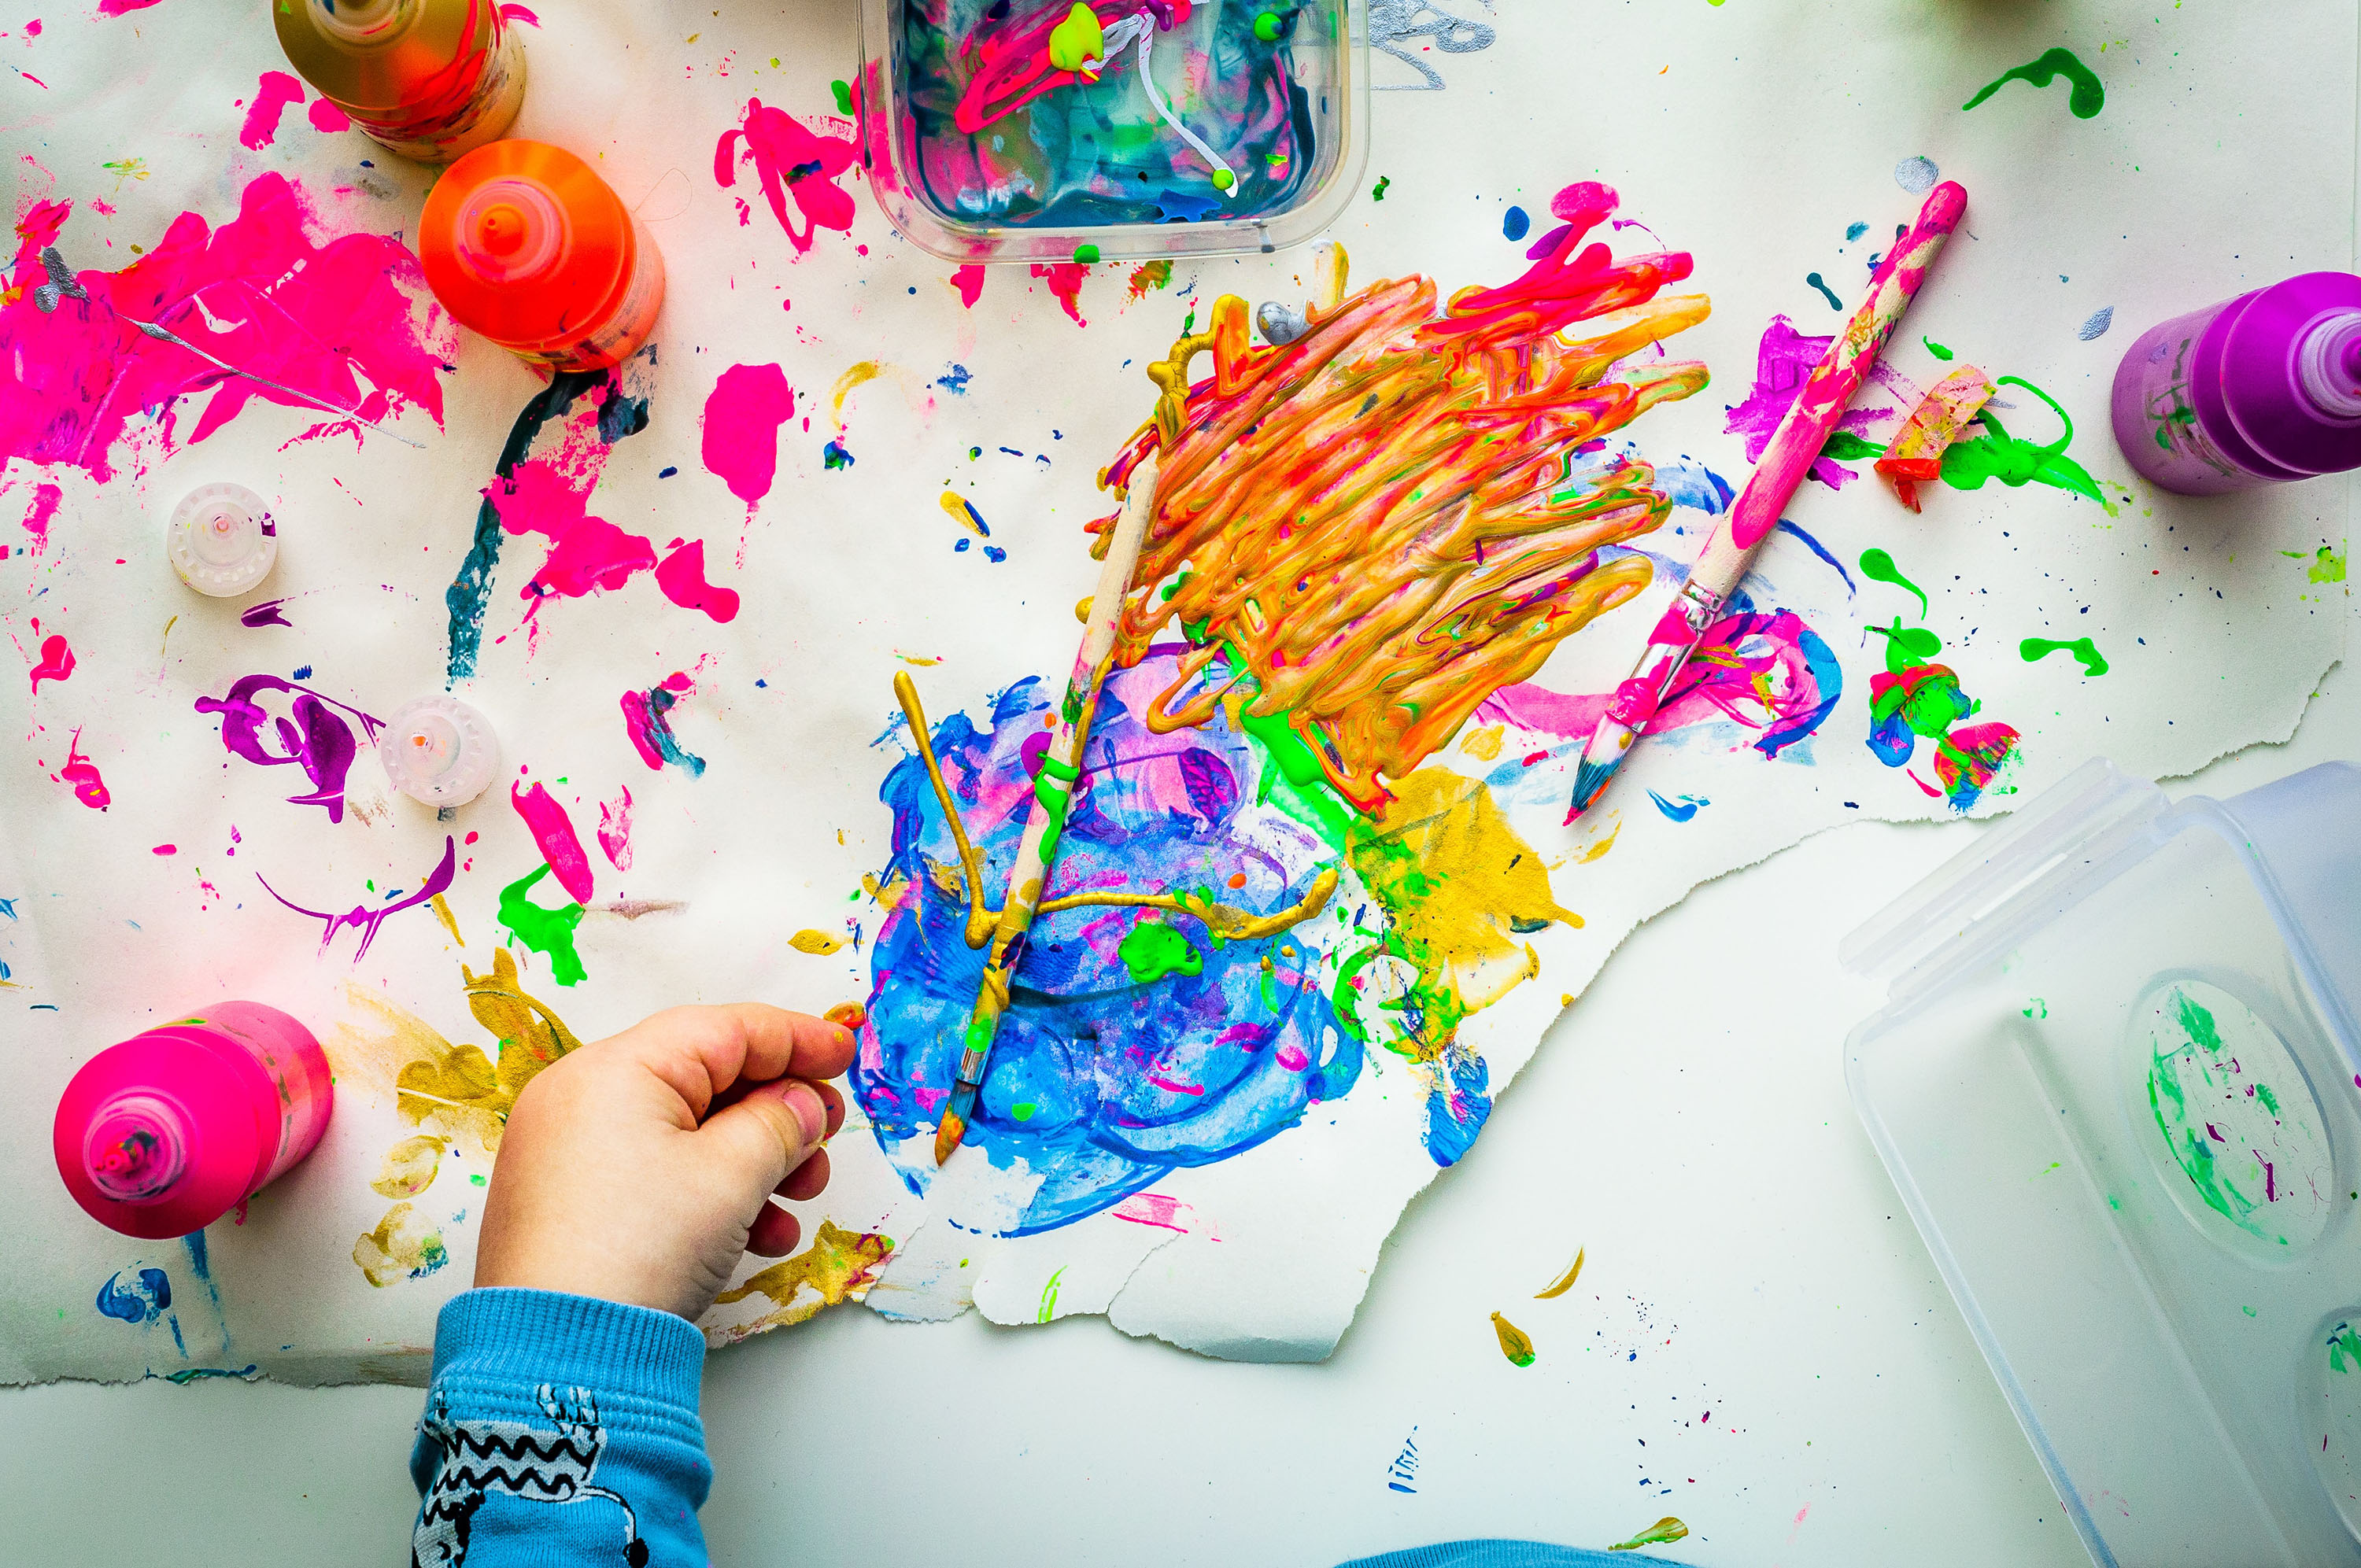 Why kids seem to be more creative?